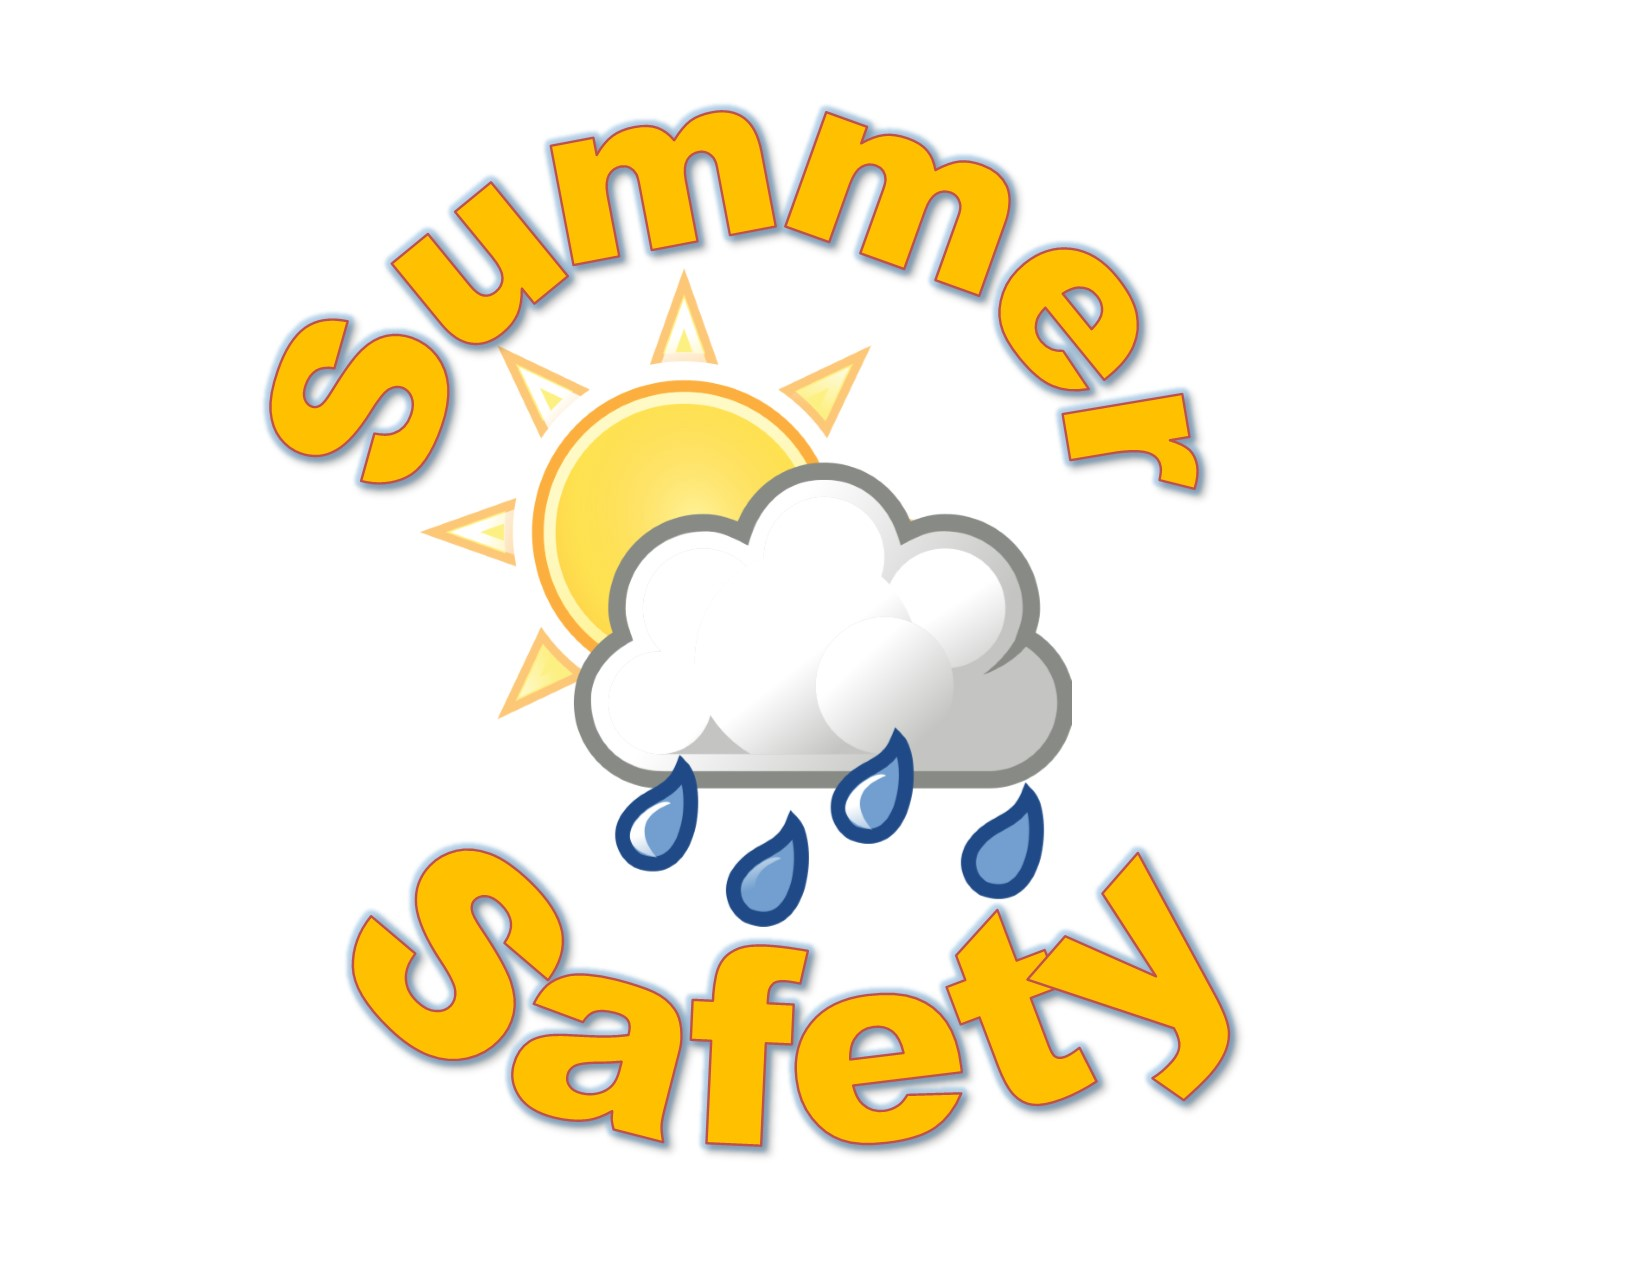 Summer Safety image.jpg